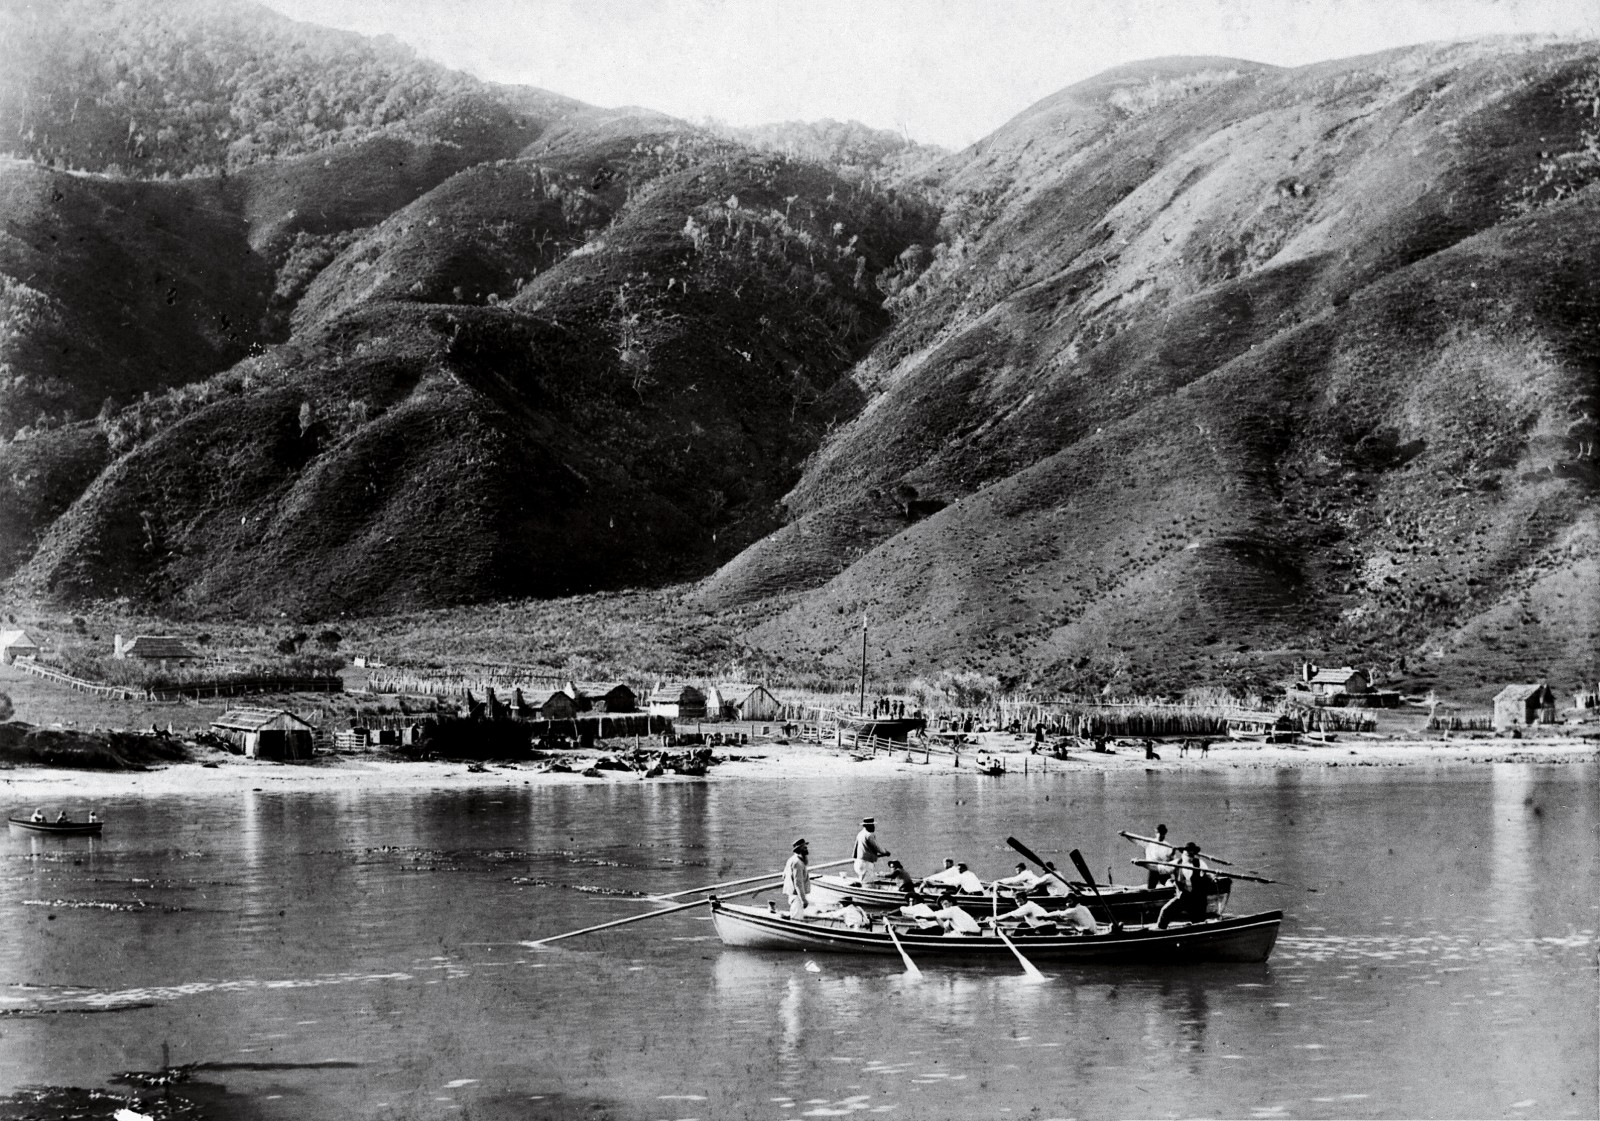 Te Awaiti (known to whalers as Tar'white), inside Tory Channel, was the site of the country's first shore whaling station, set up in the late 1820s by ex-convict Jacky Guard. Whaling was carried out periodically from this bay for almost 100 years, and at the time the Treaty of Waitangi was signed it was the South Island's largest settlement. The dapper dress of the whaleboat crews in this photograph disguises the more gruesome aspects of their trade. After killing their quarry—often a brutal, protracted process—they sewed the mouth shut to reduce water resistance as they towed the carcass back to shore.